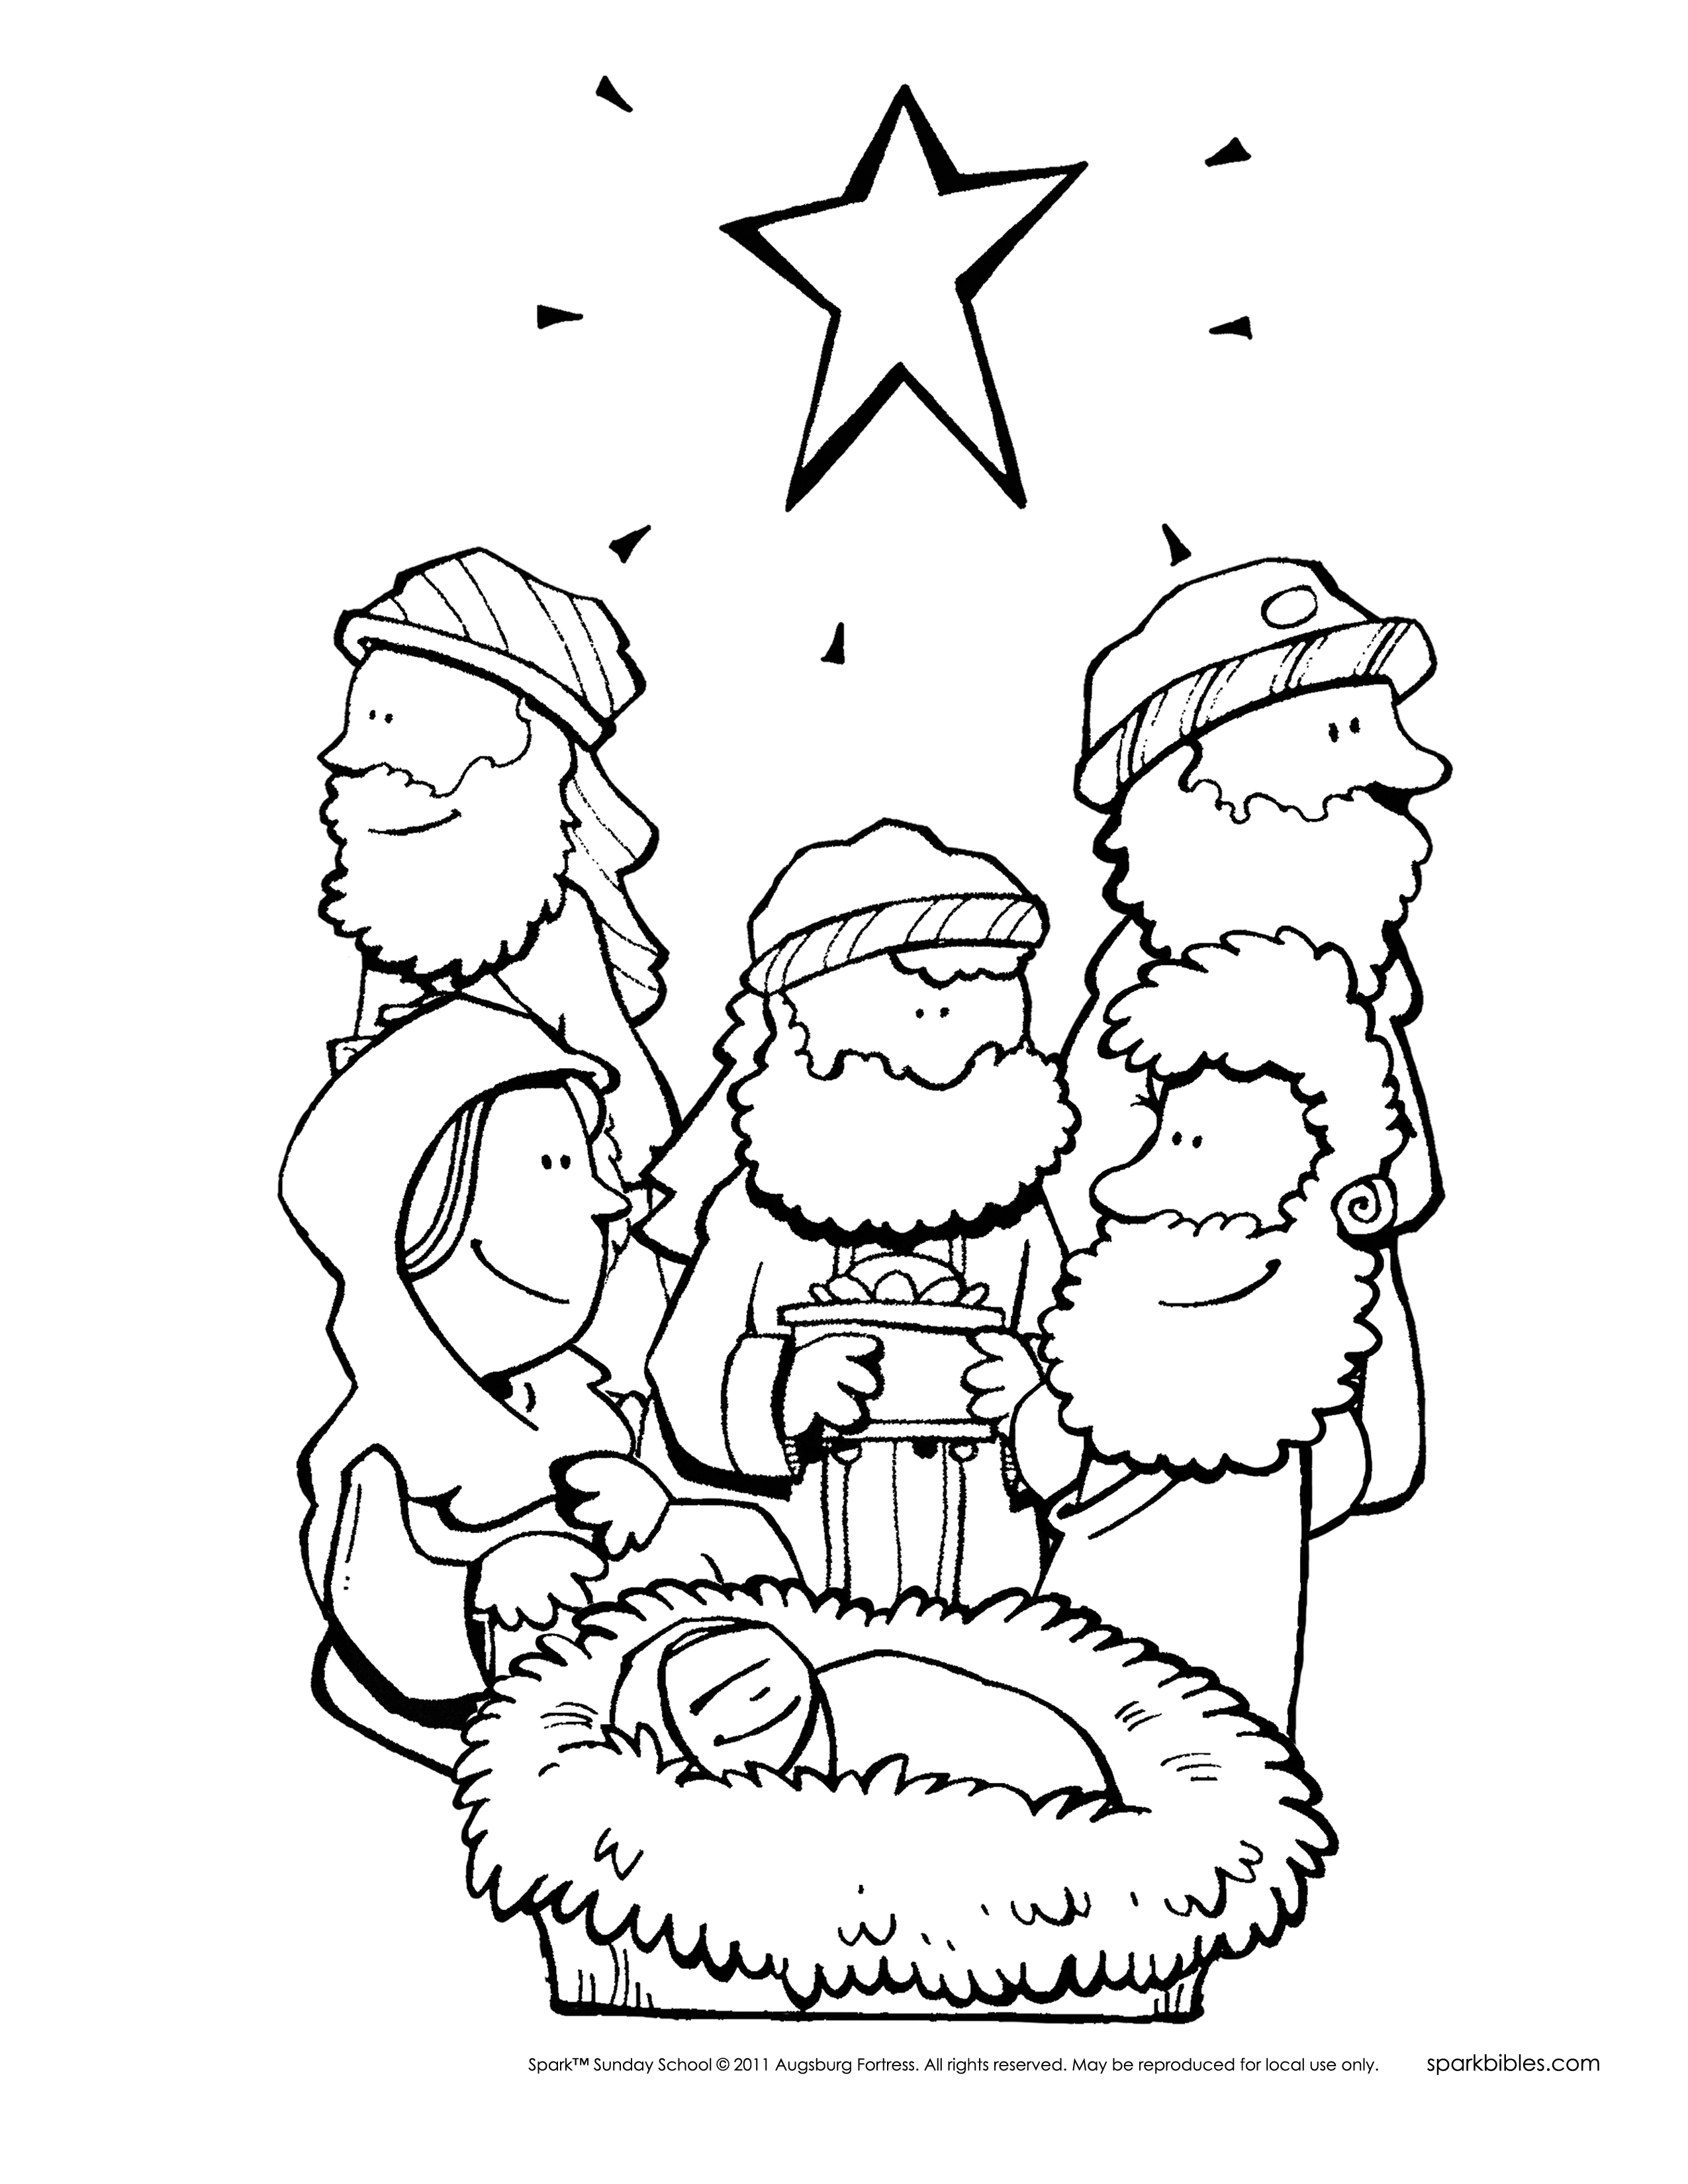 Wise Men Worship Jesus Coloring Page - Get Coloring Pages | 3300x2550